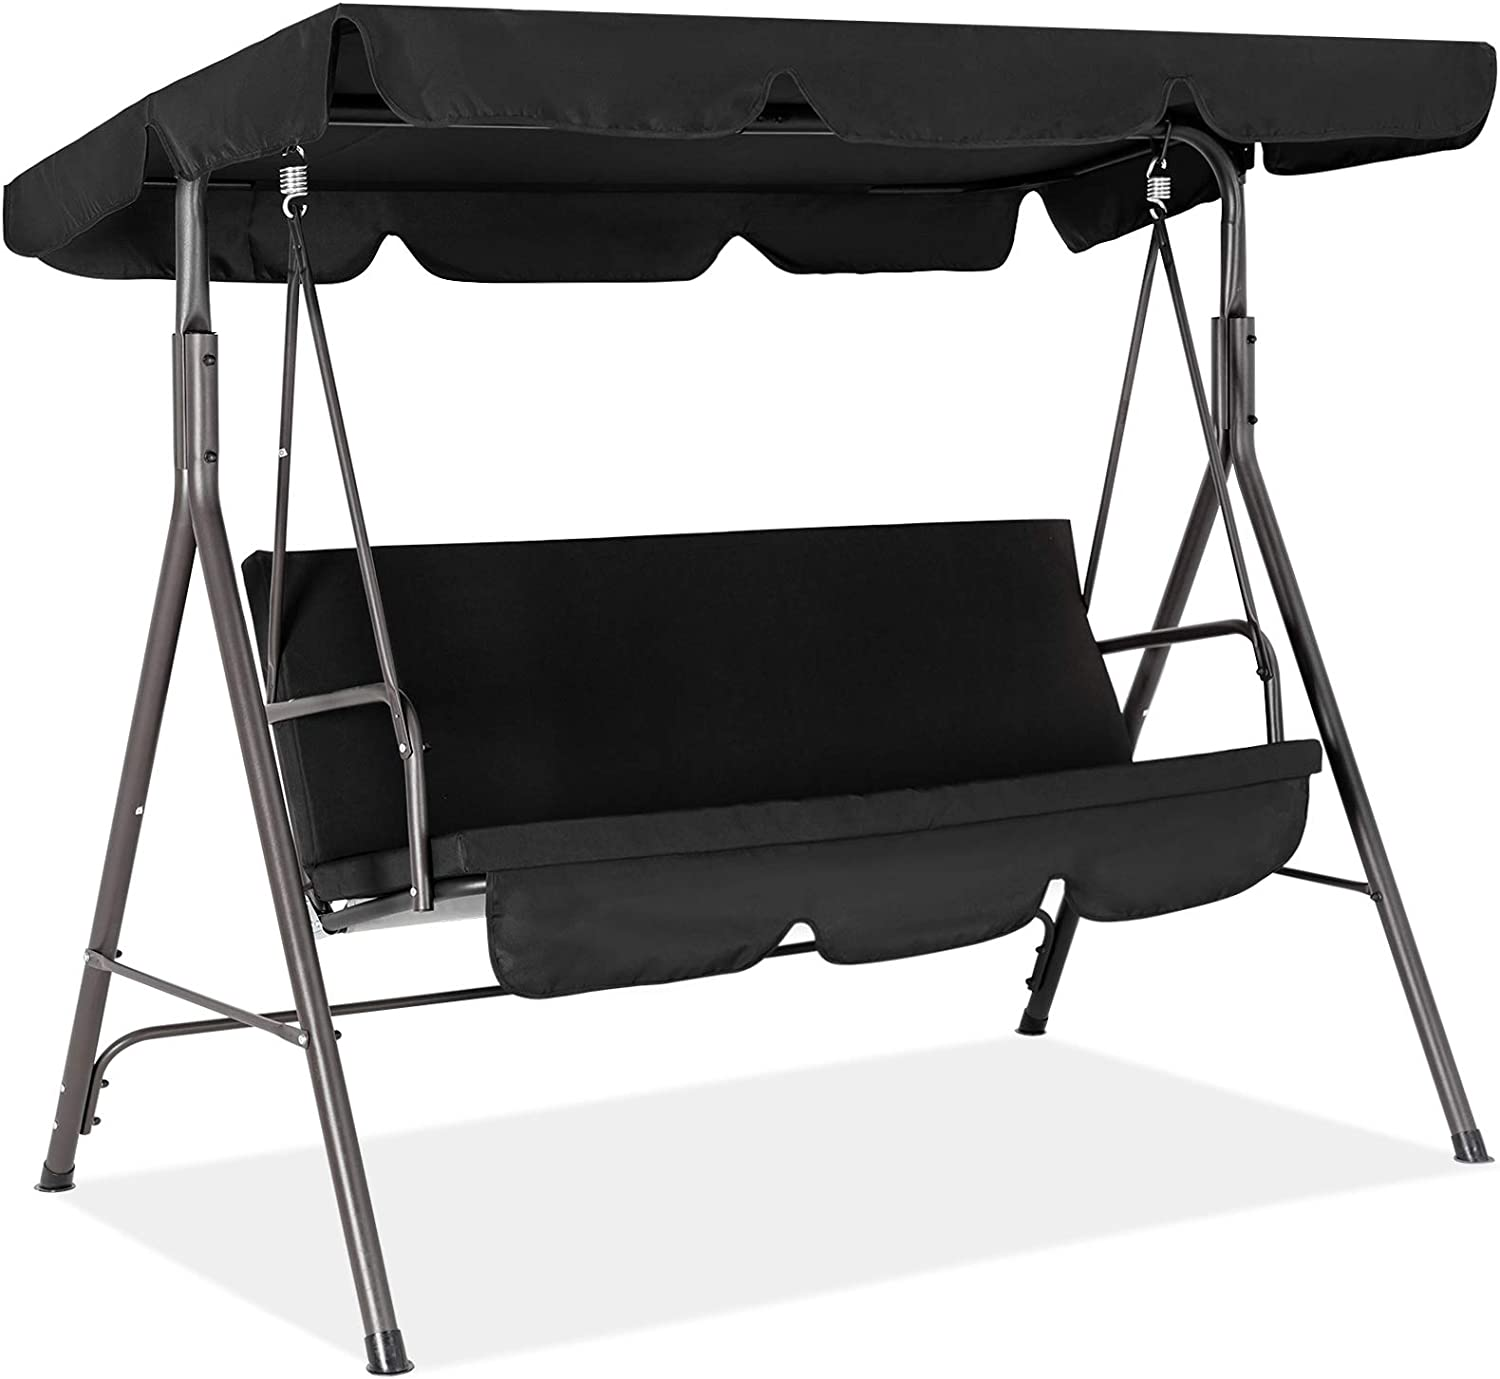 Fundouns 2-Person Patio Porch Swing Chair, Patio Swing with Canopy and Removable Cushions - Black